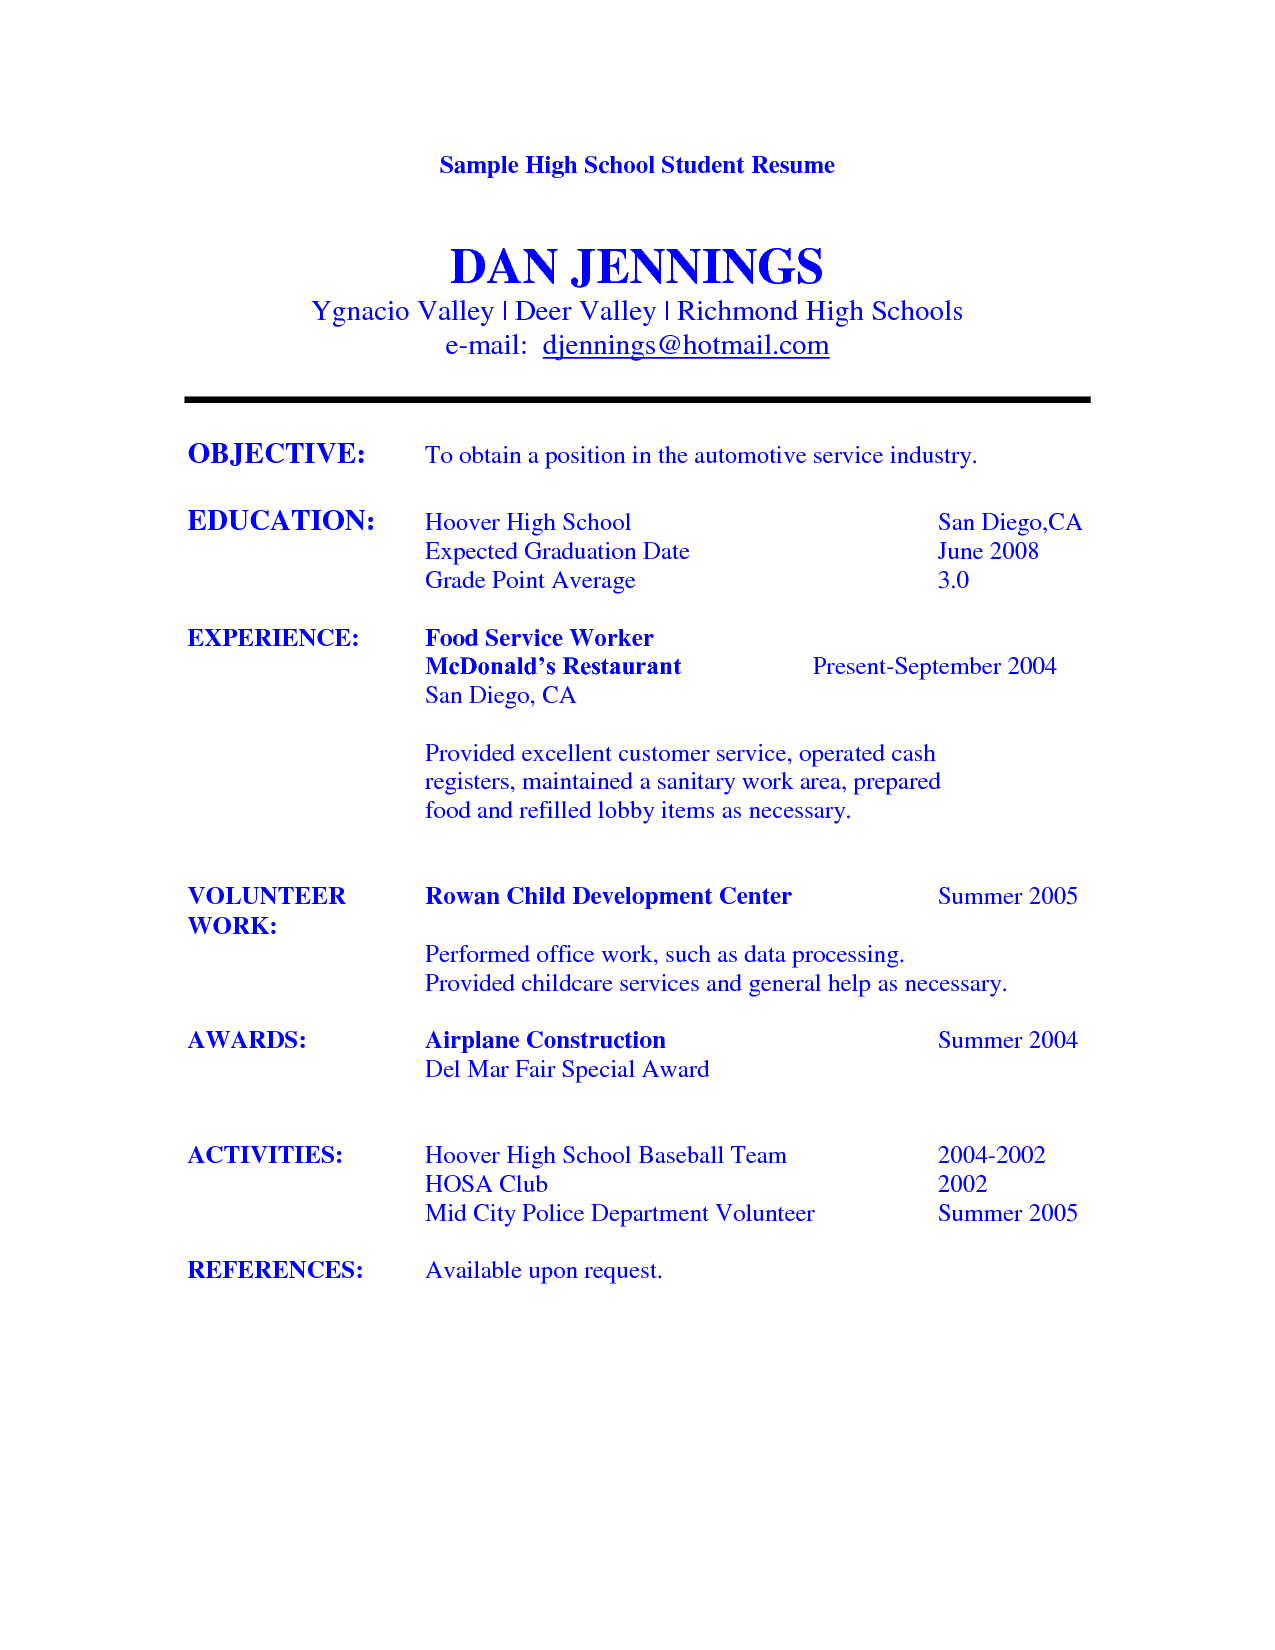 Sample Resume For High School Student Bules Penantly Co